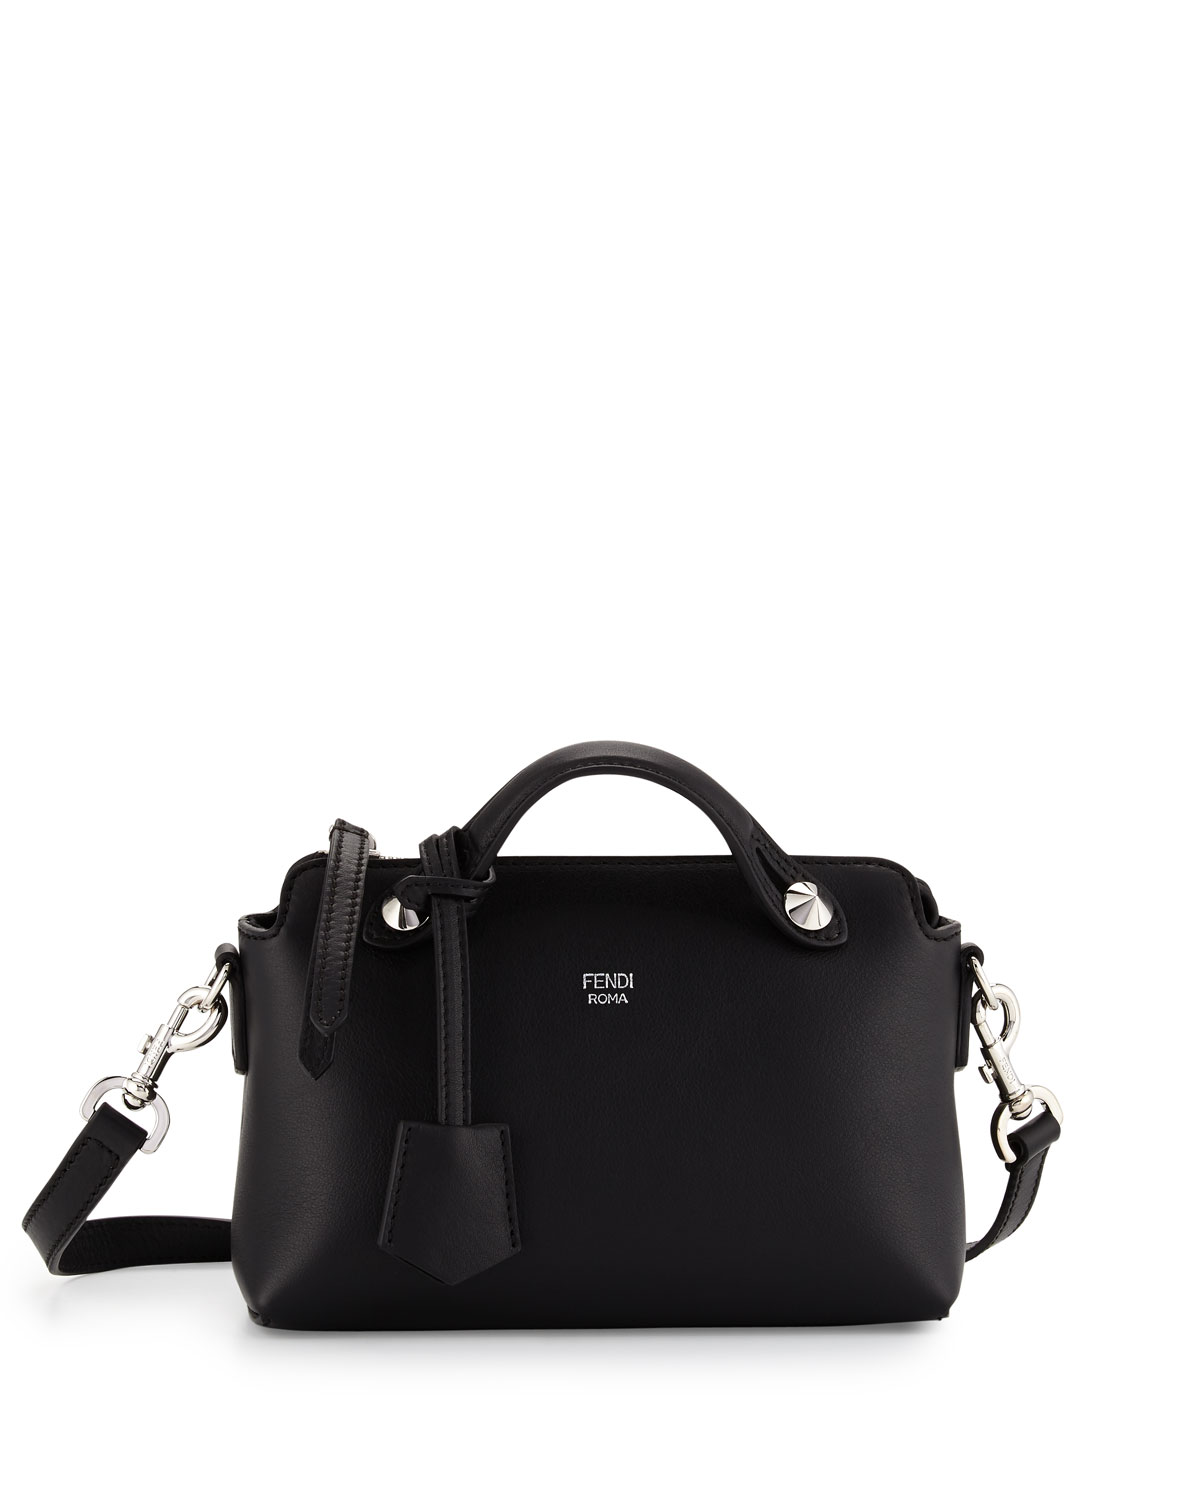 67d9d277e0 Fendi By the Way Mini Satchel Bag